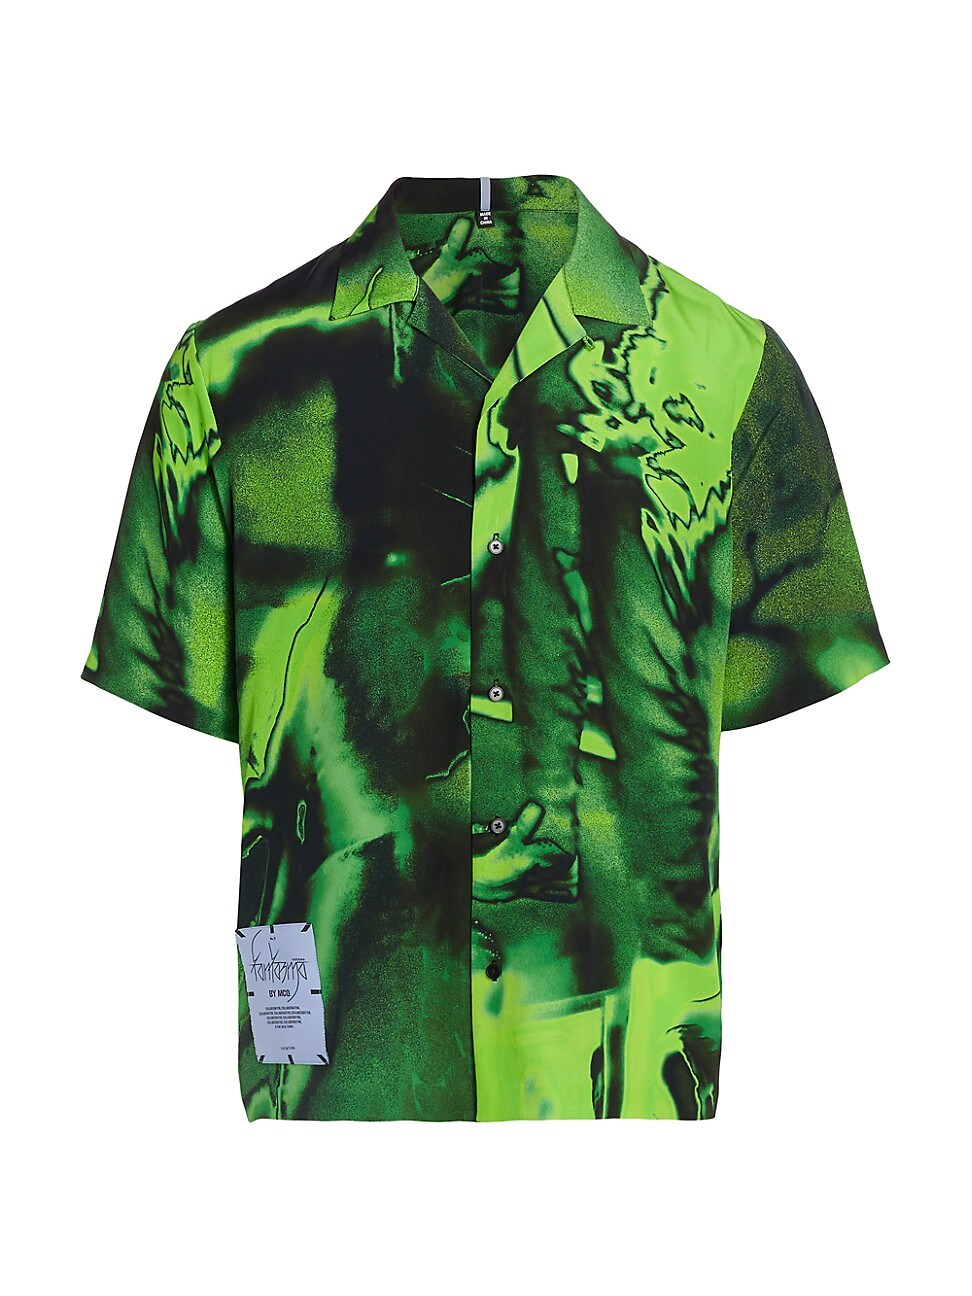 Mcq By Alexander Mcqueen MEN'S SILK RAVE SHIRT